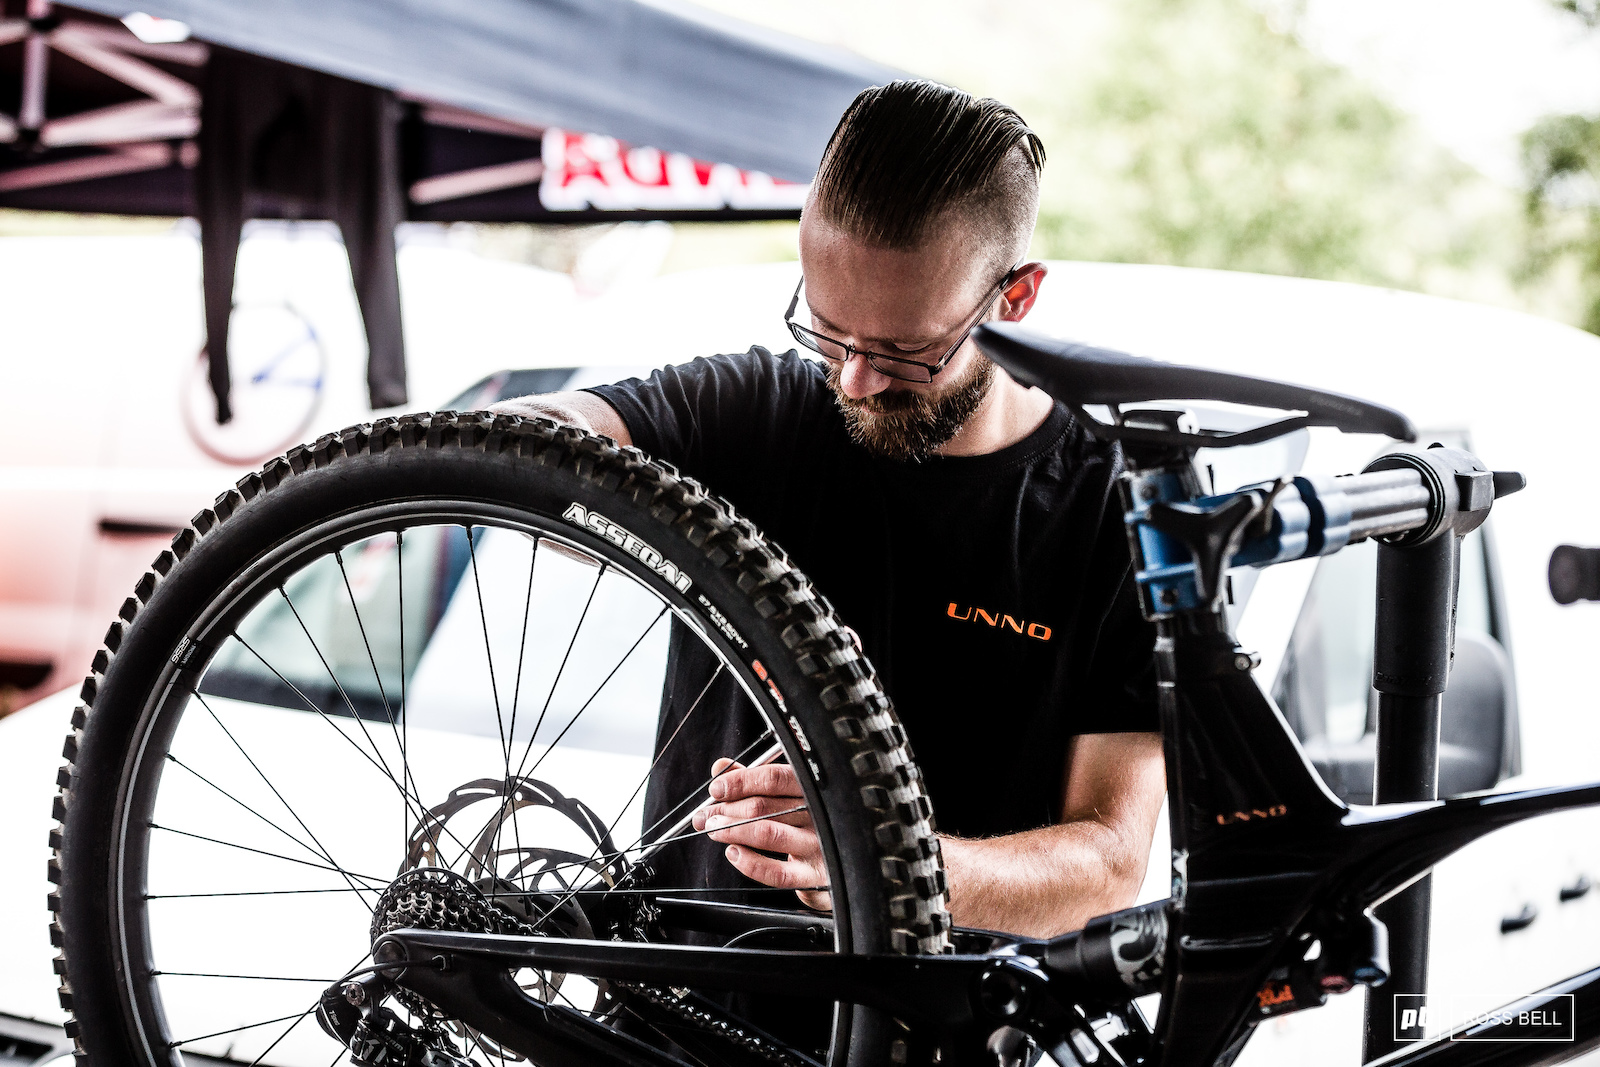 UNNO team mechanic Jesse Wigman making sure back to back reigning champ Greg Williamson has the right tools at his disposal to defend his sleeve.